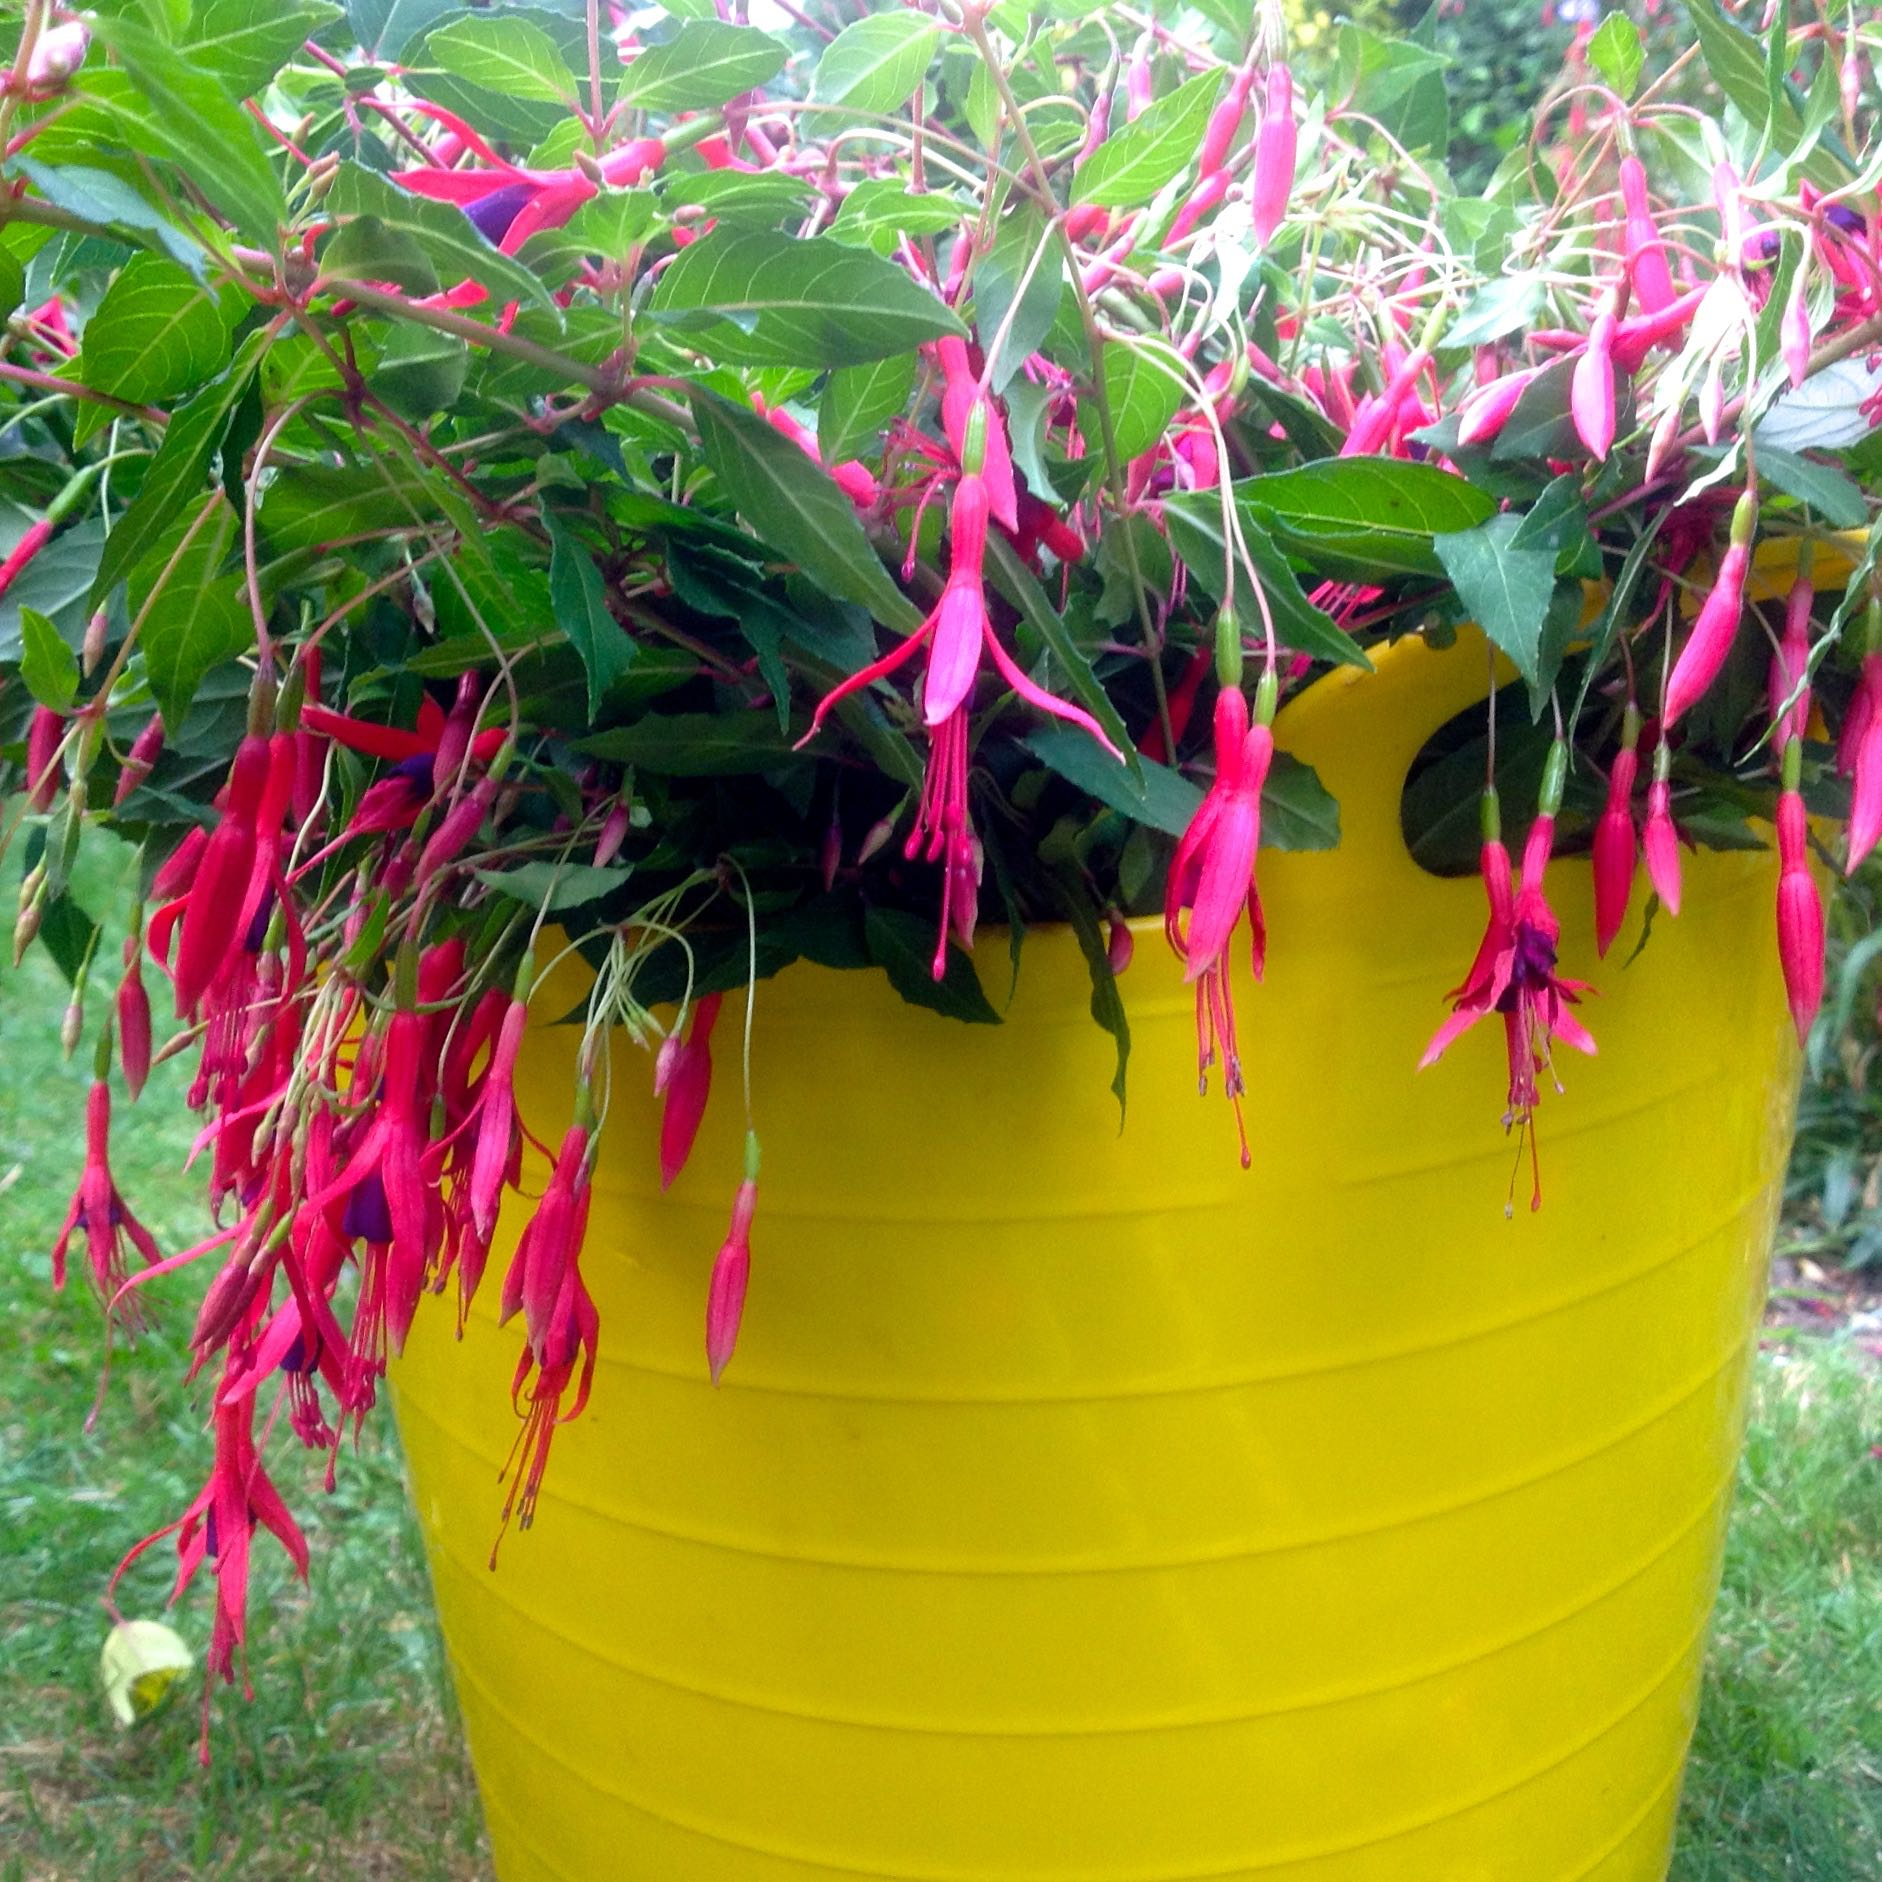 Trimming the hardy fuchsia bush